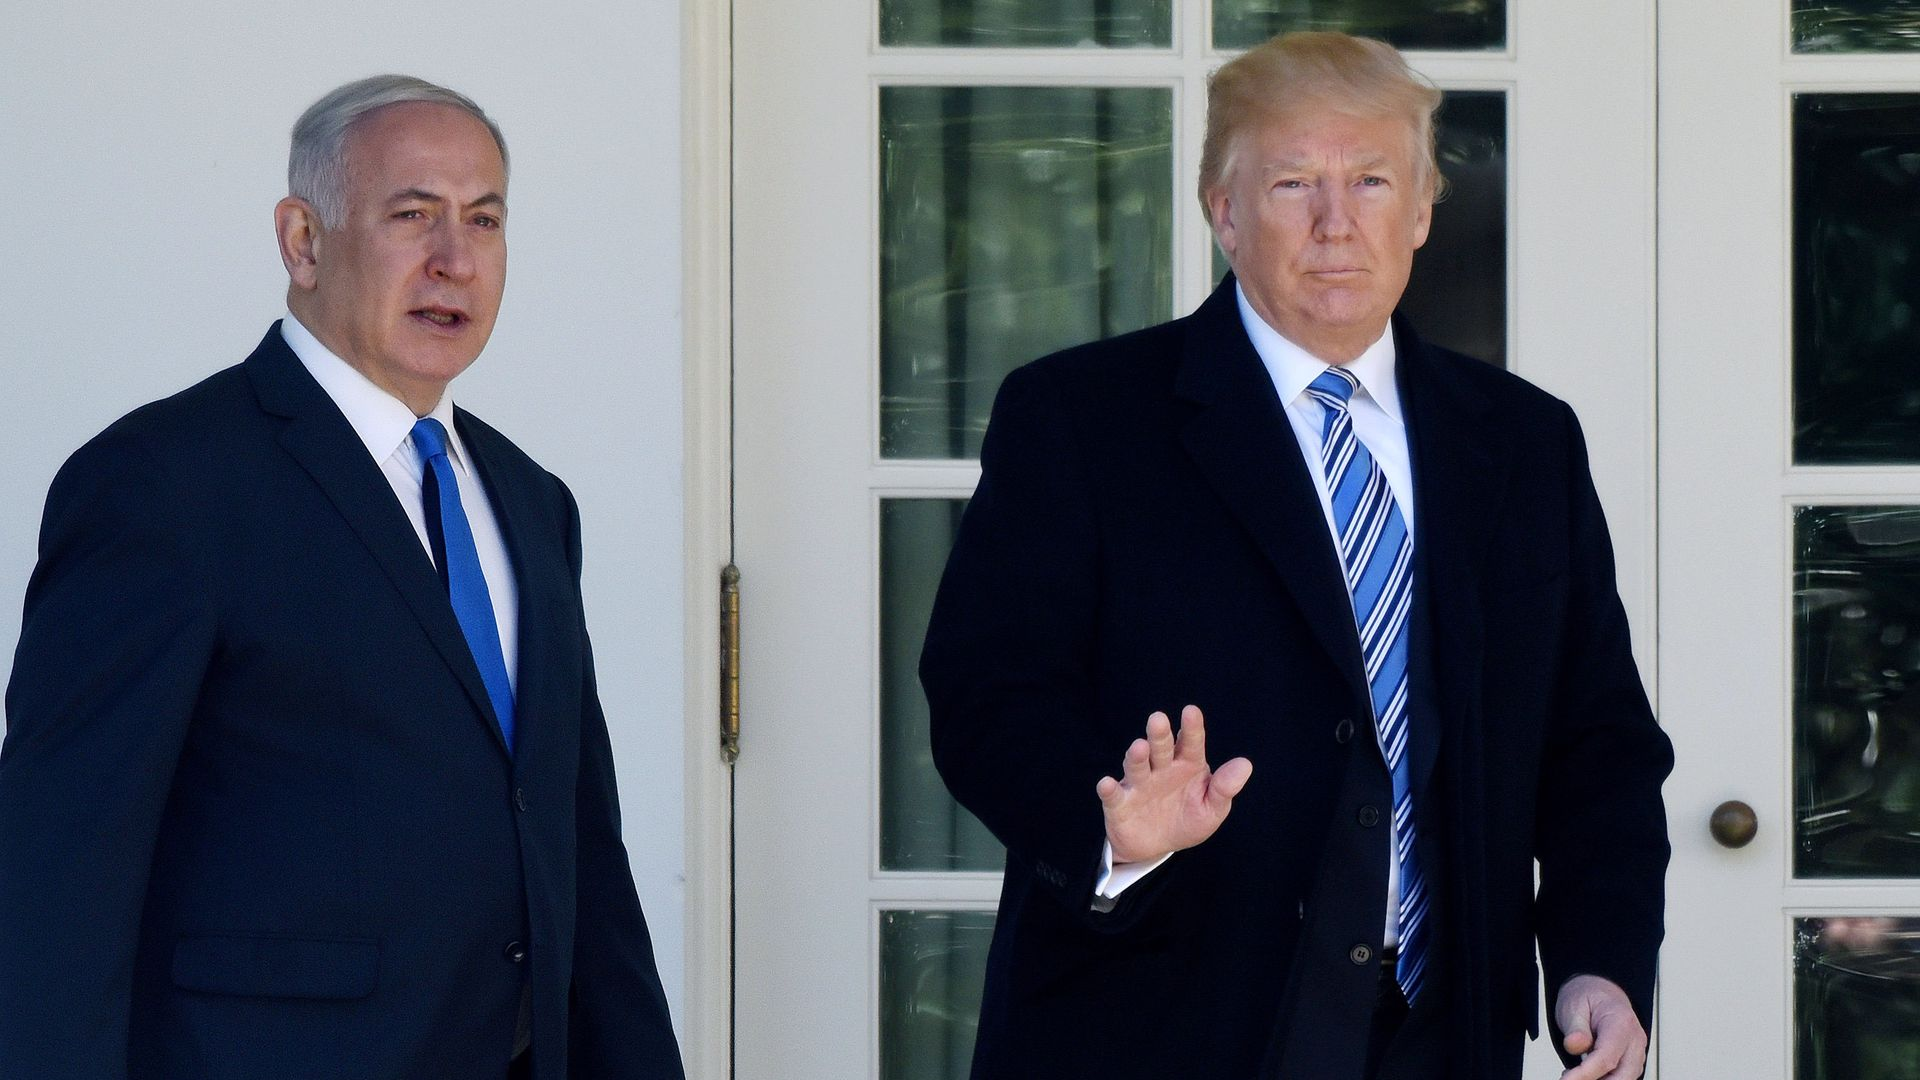 Trump told Macron he's ready to pressure Netanyahu to back peace plan